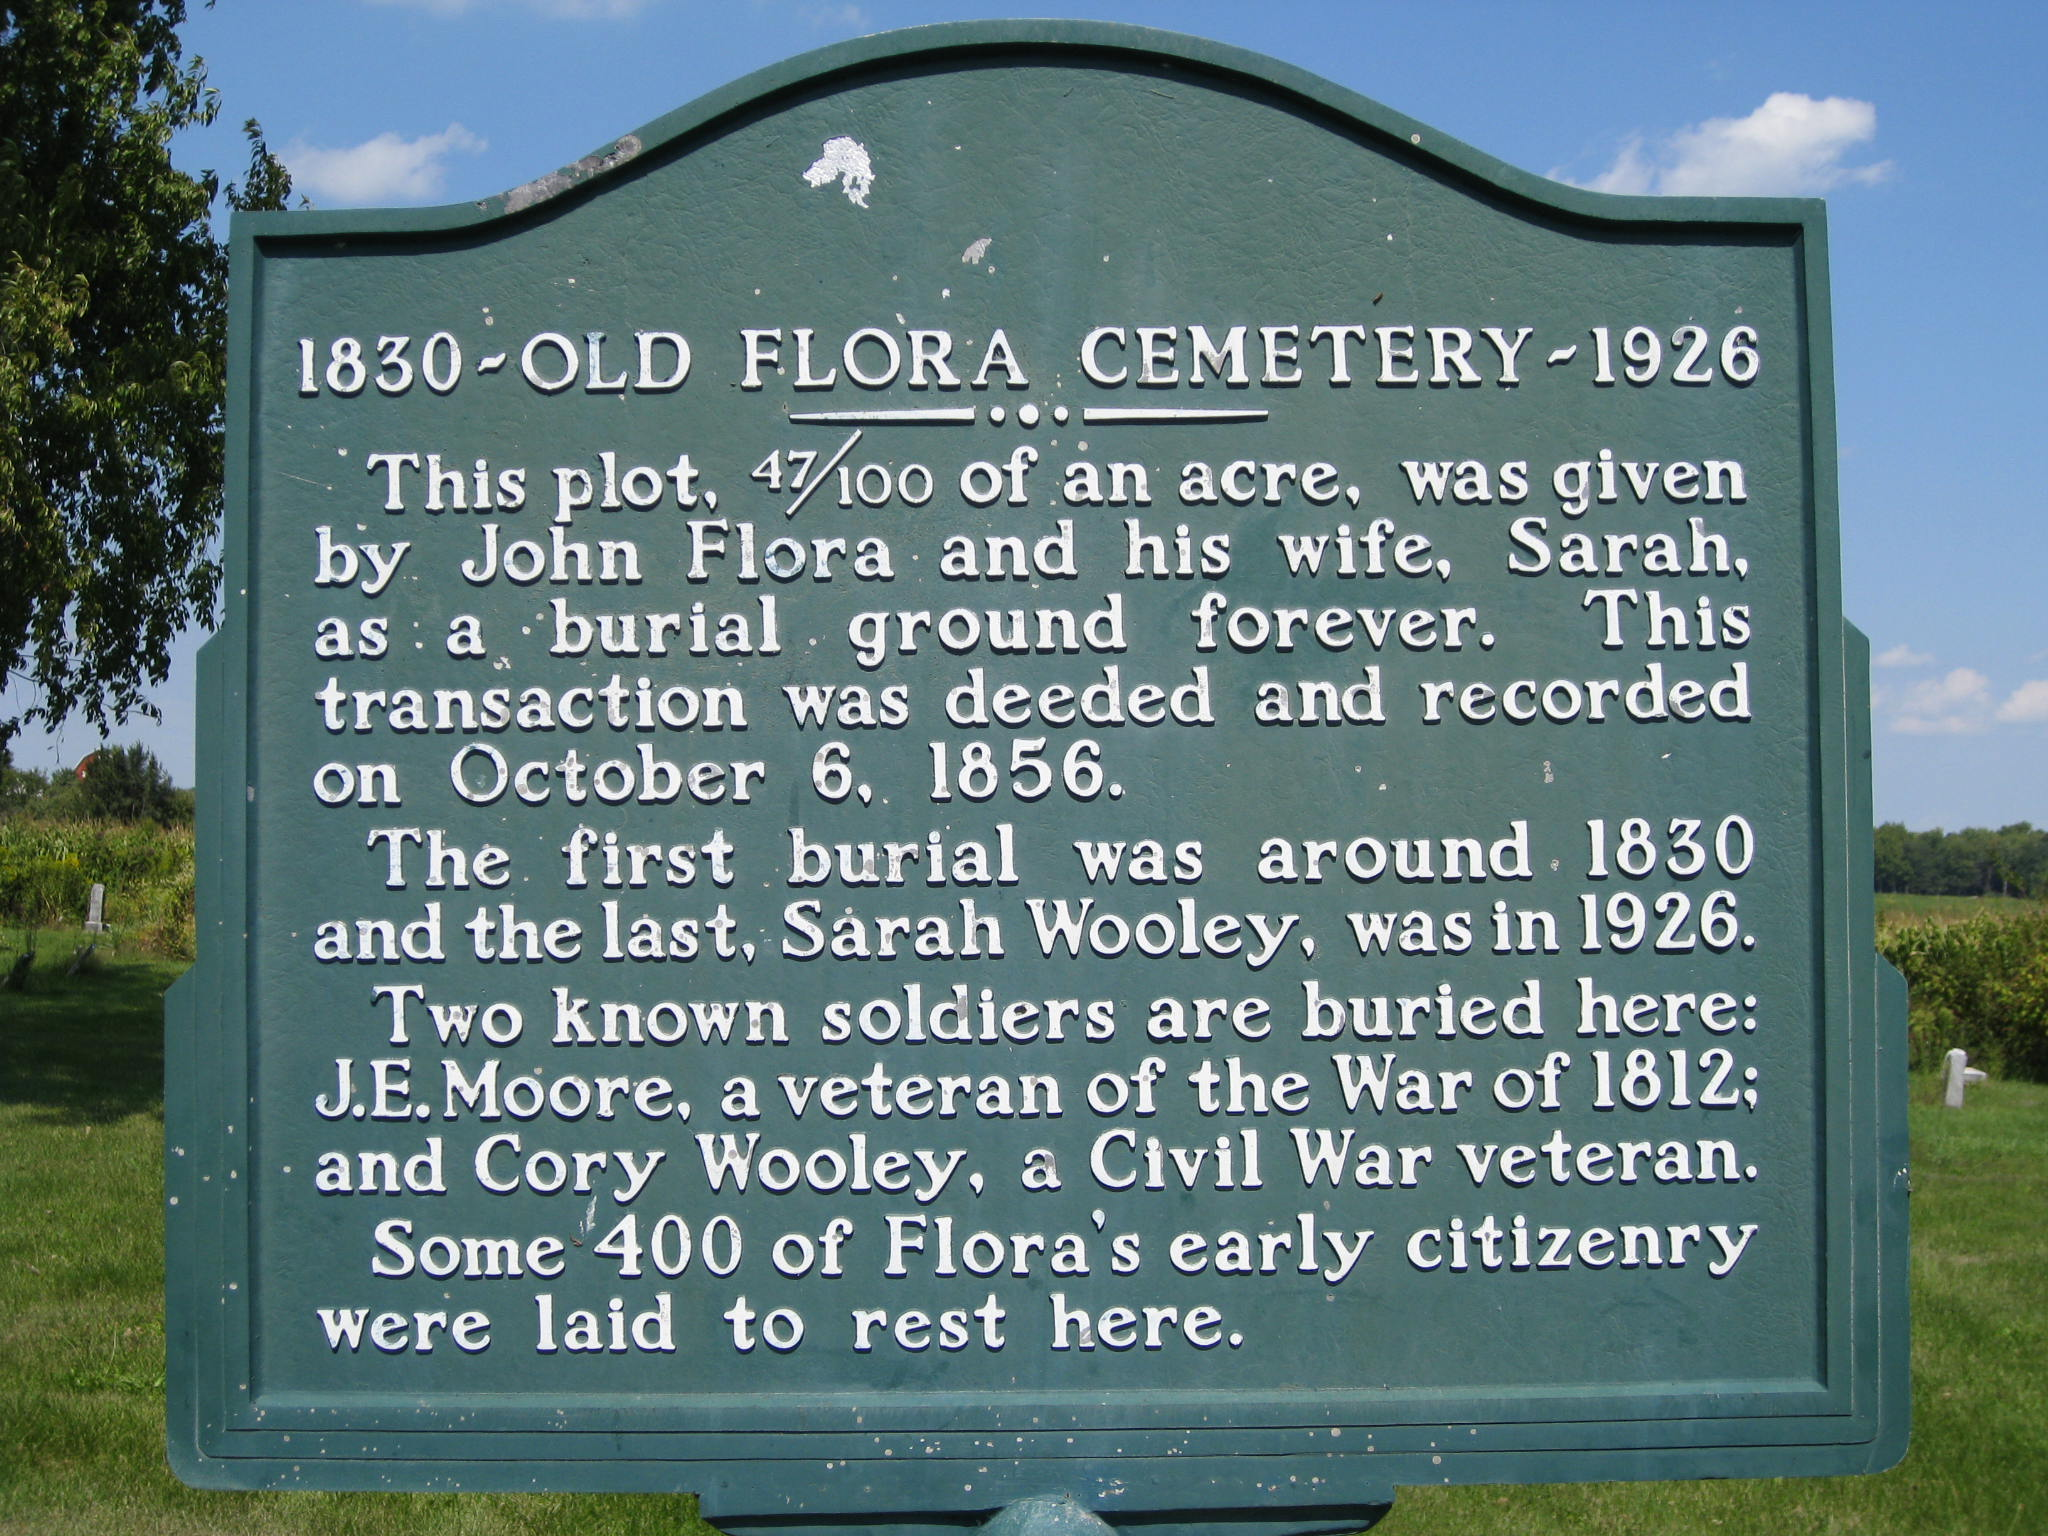 Old Flora Cemetery Historical Marker in Carroll County Indiana